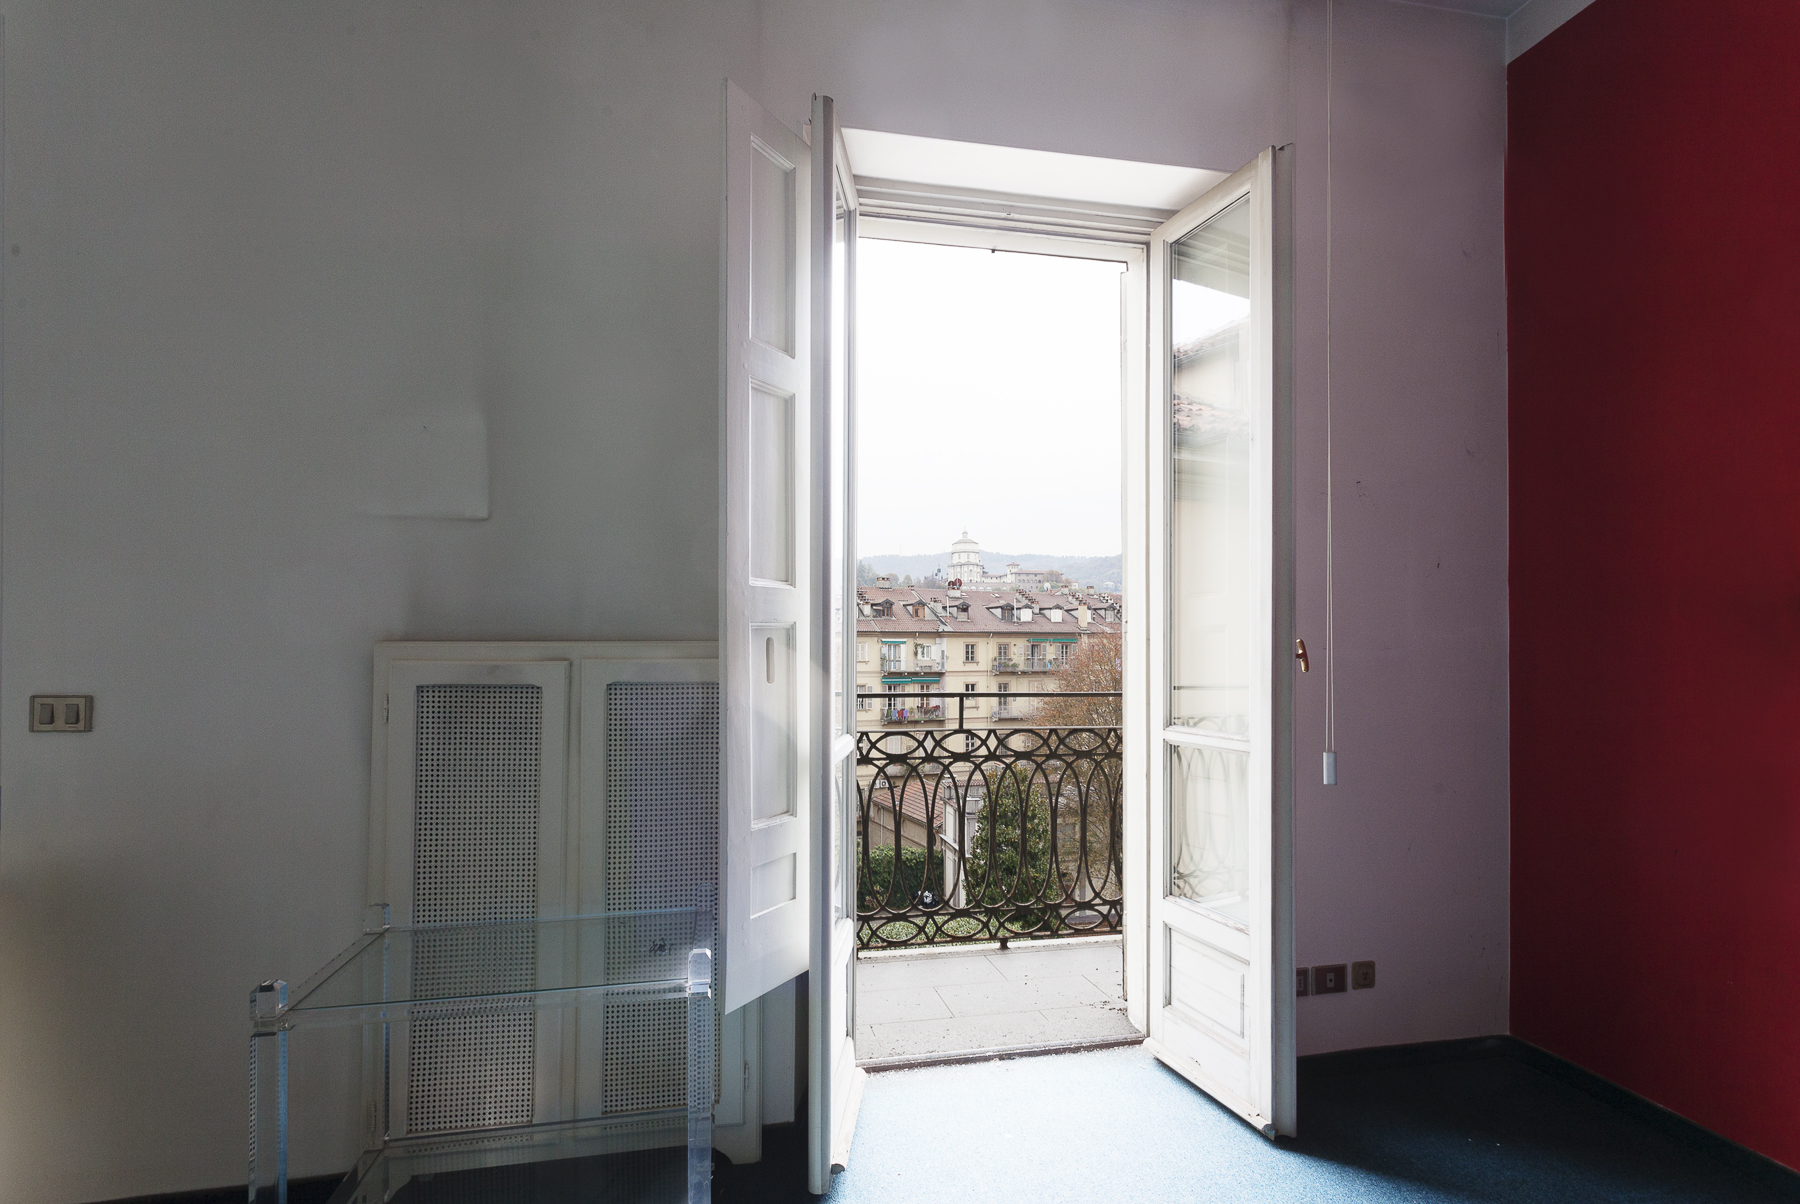 Additional photo for property listing at Bright Apartment with overlooking Mole Antonelliana and Cappuccini Via Maria Vittoria Turin, Turin 10123 Italien